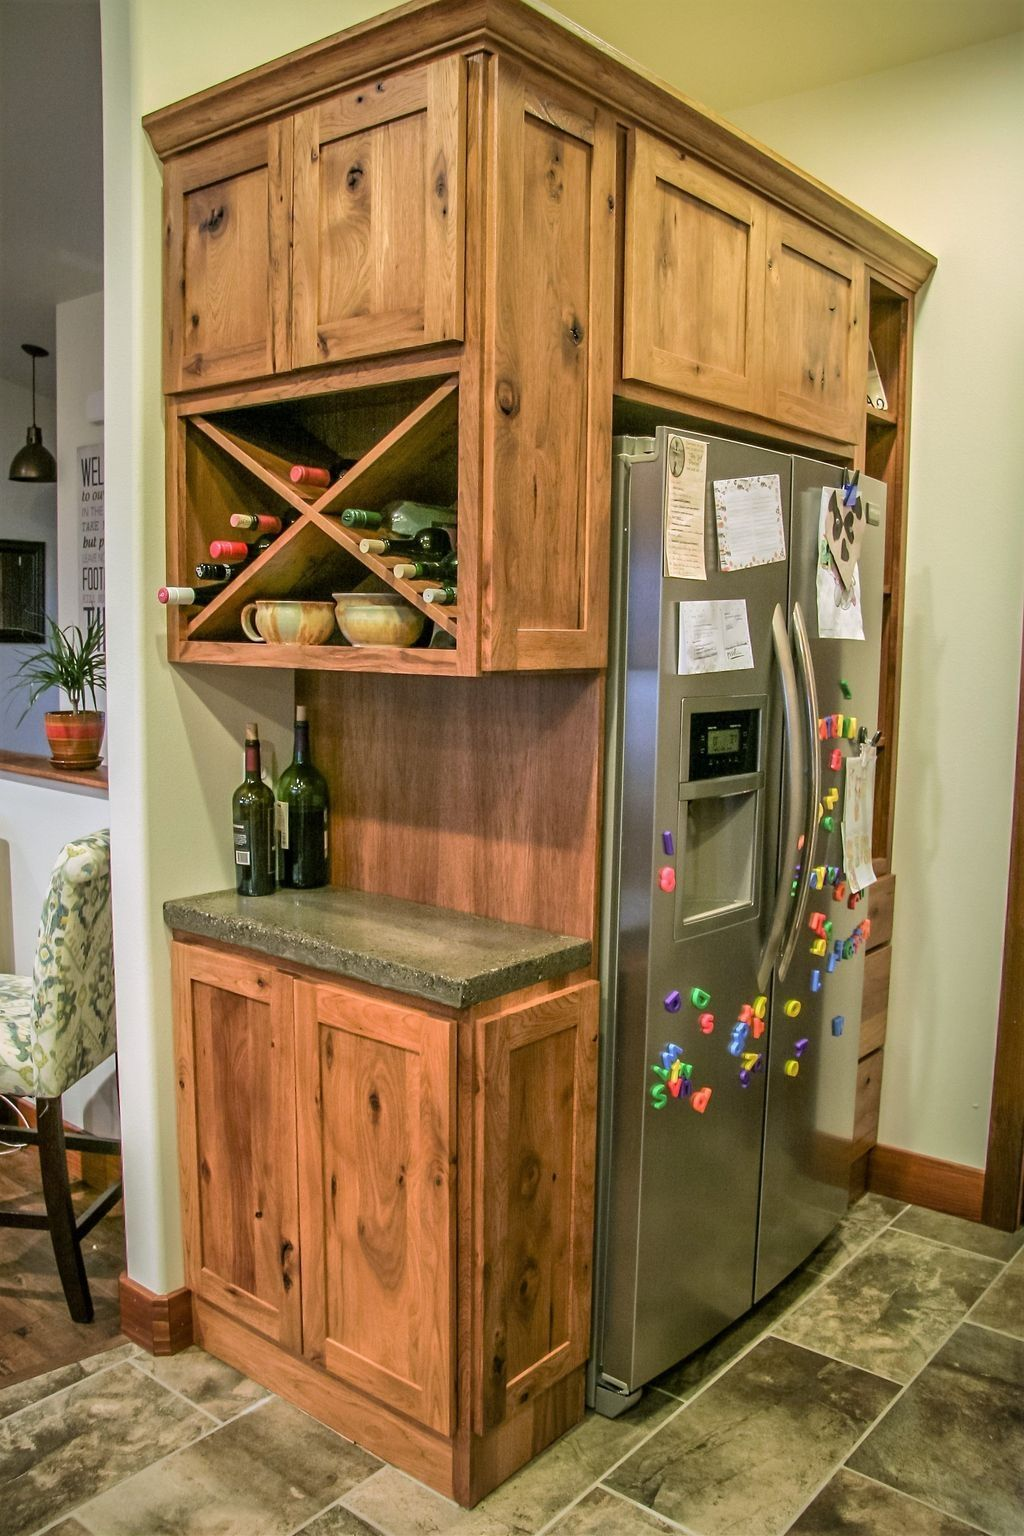 30+ Gorgeous Small Kitchen Remodel Ideas images